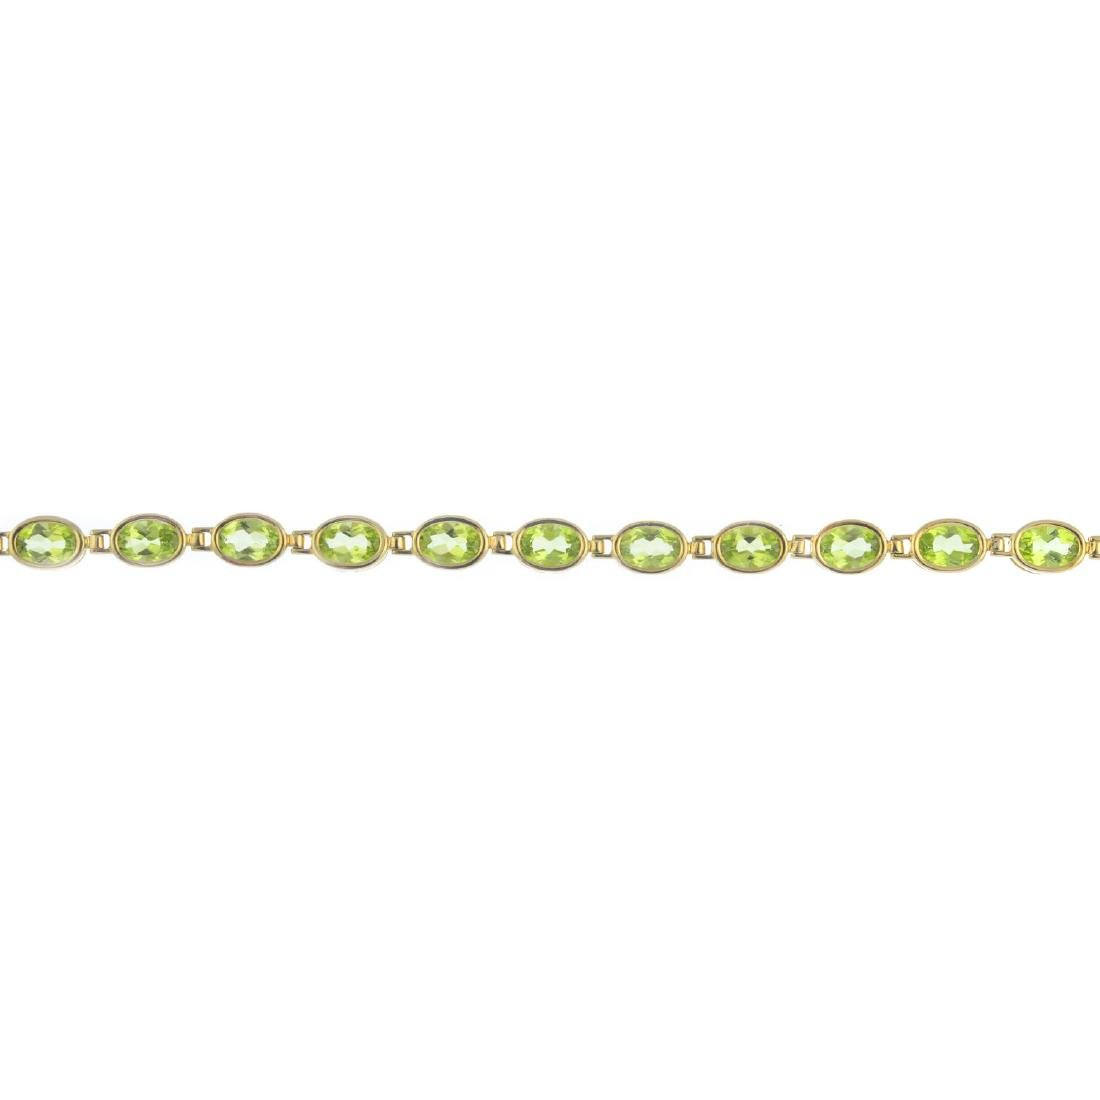 A 9ct gold peridot bracelet. Designed as a series of